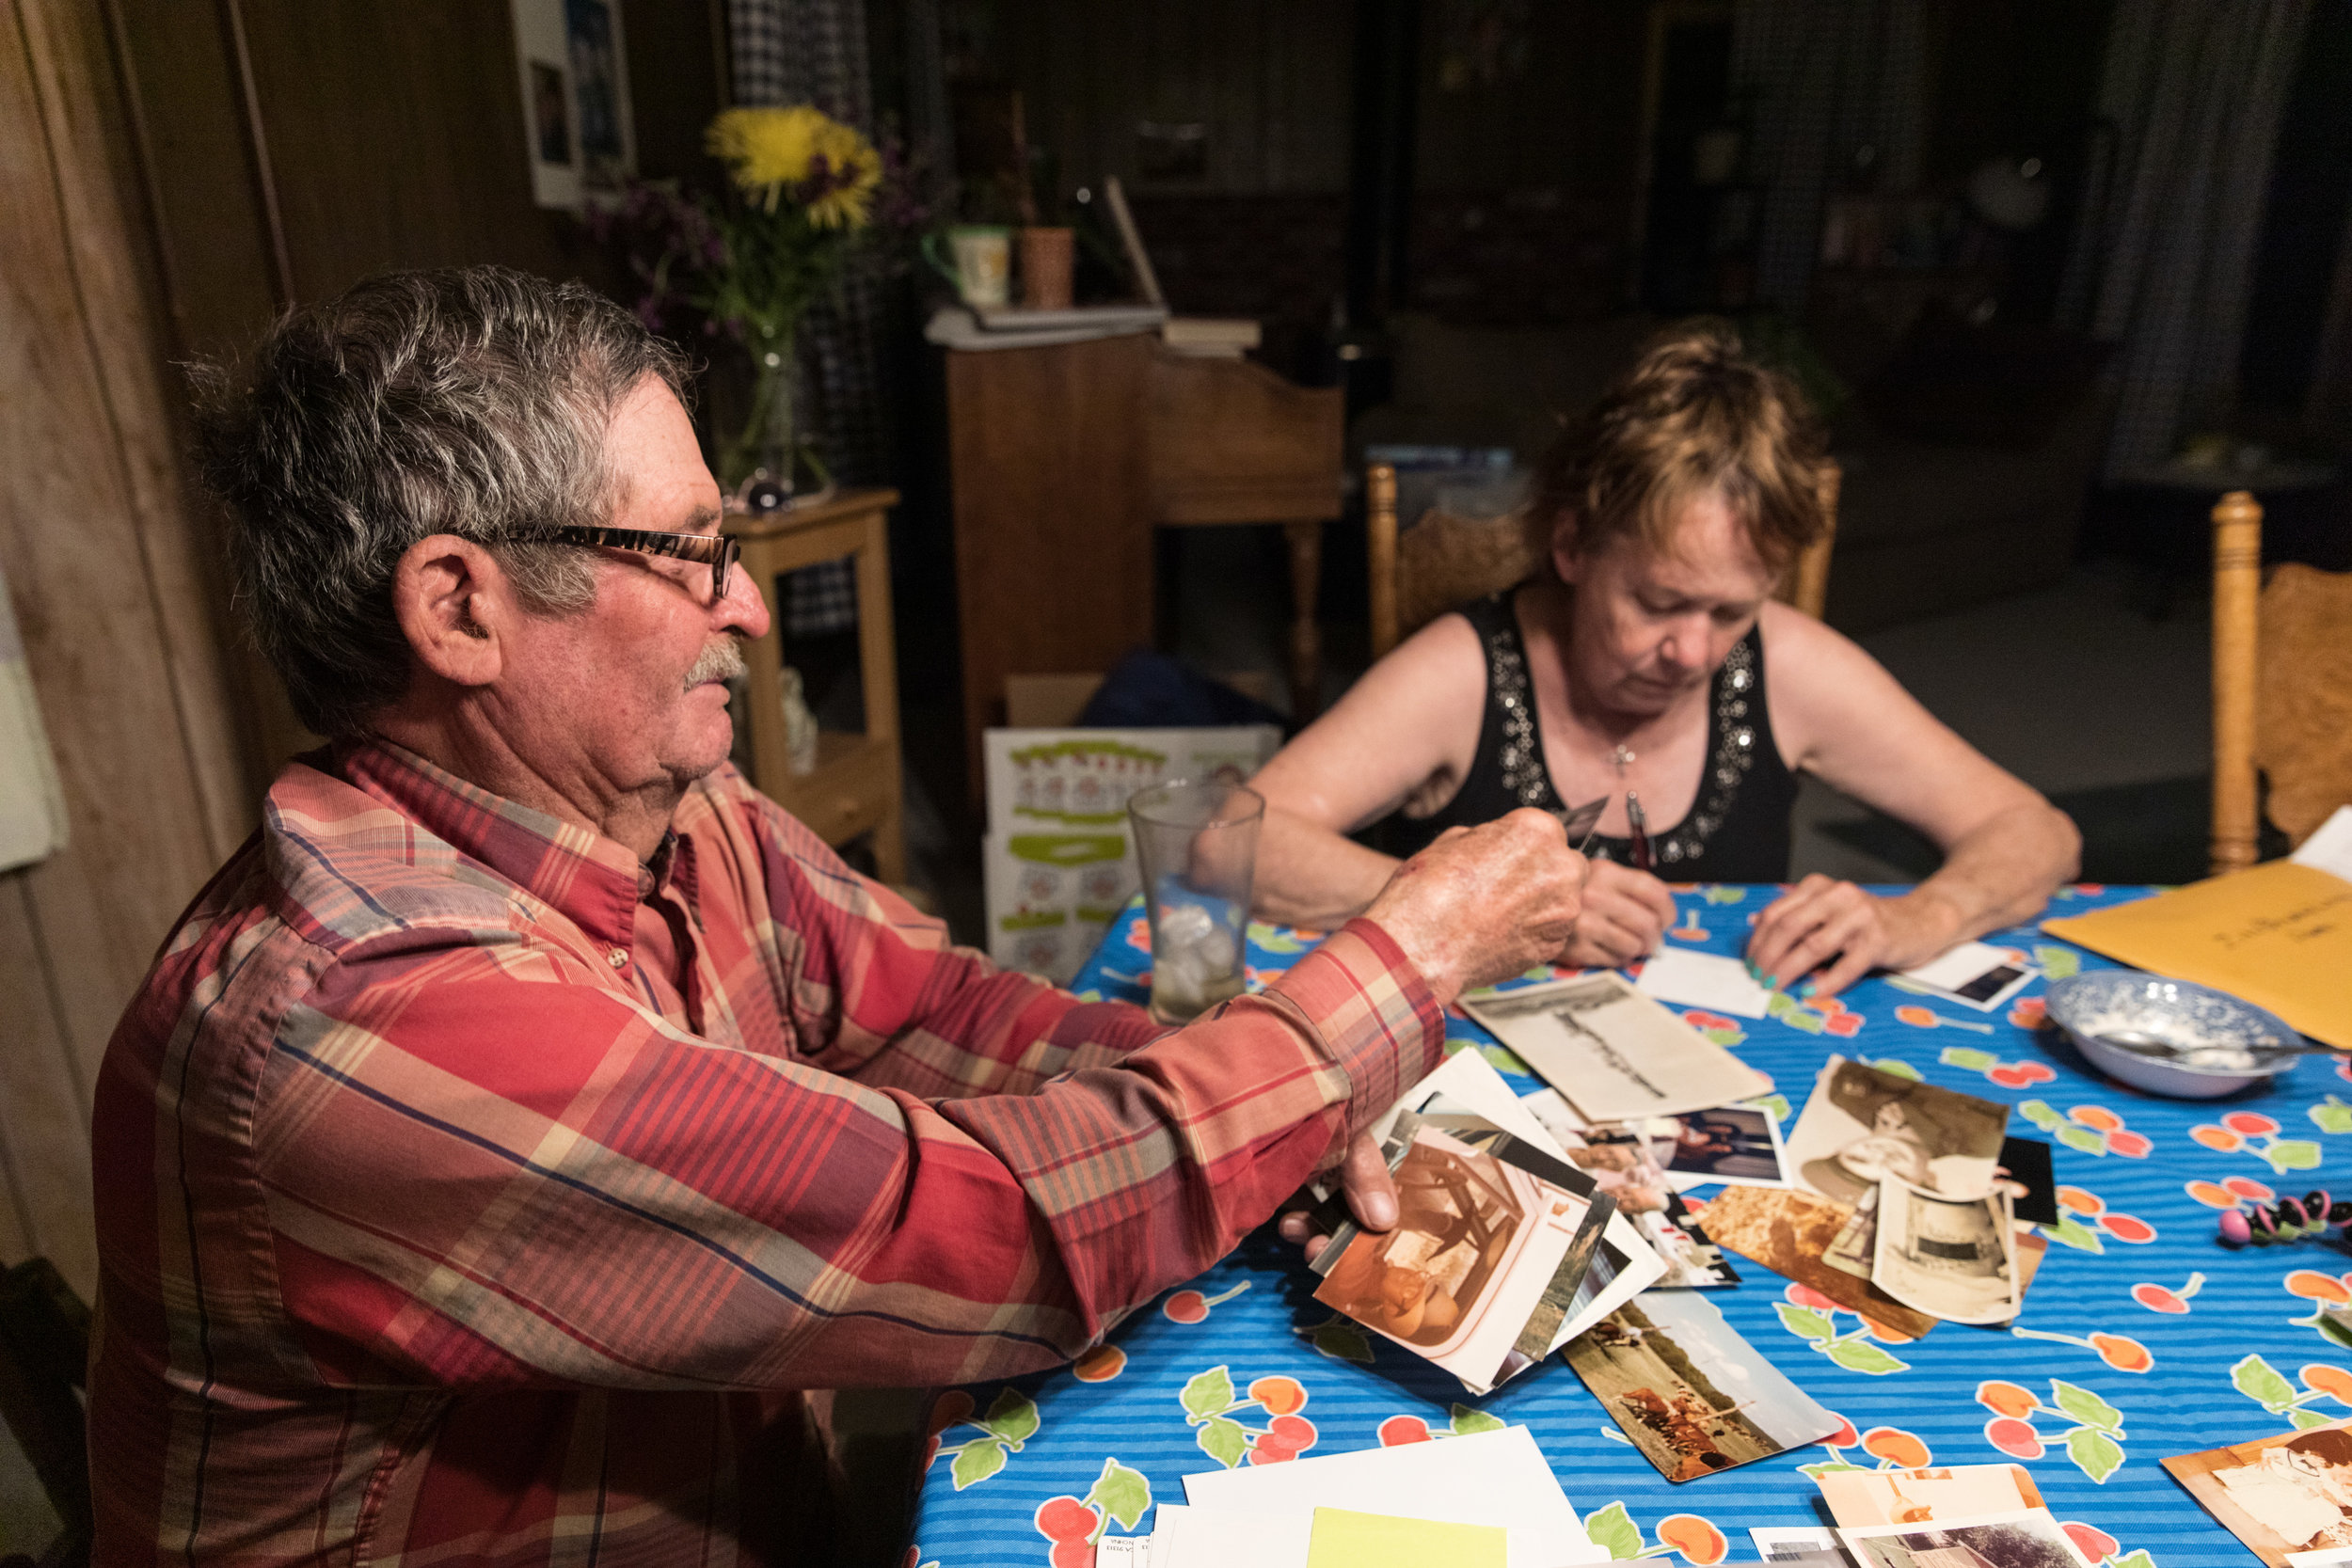 My parents, Larry, grandson of Great Grandma Zita, and Nora Gilstrap going through old photographs.